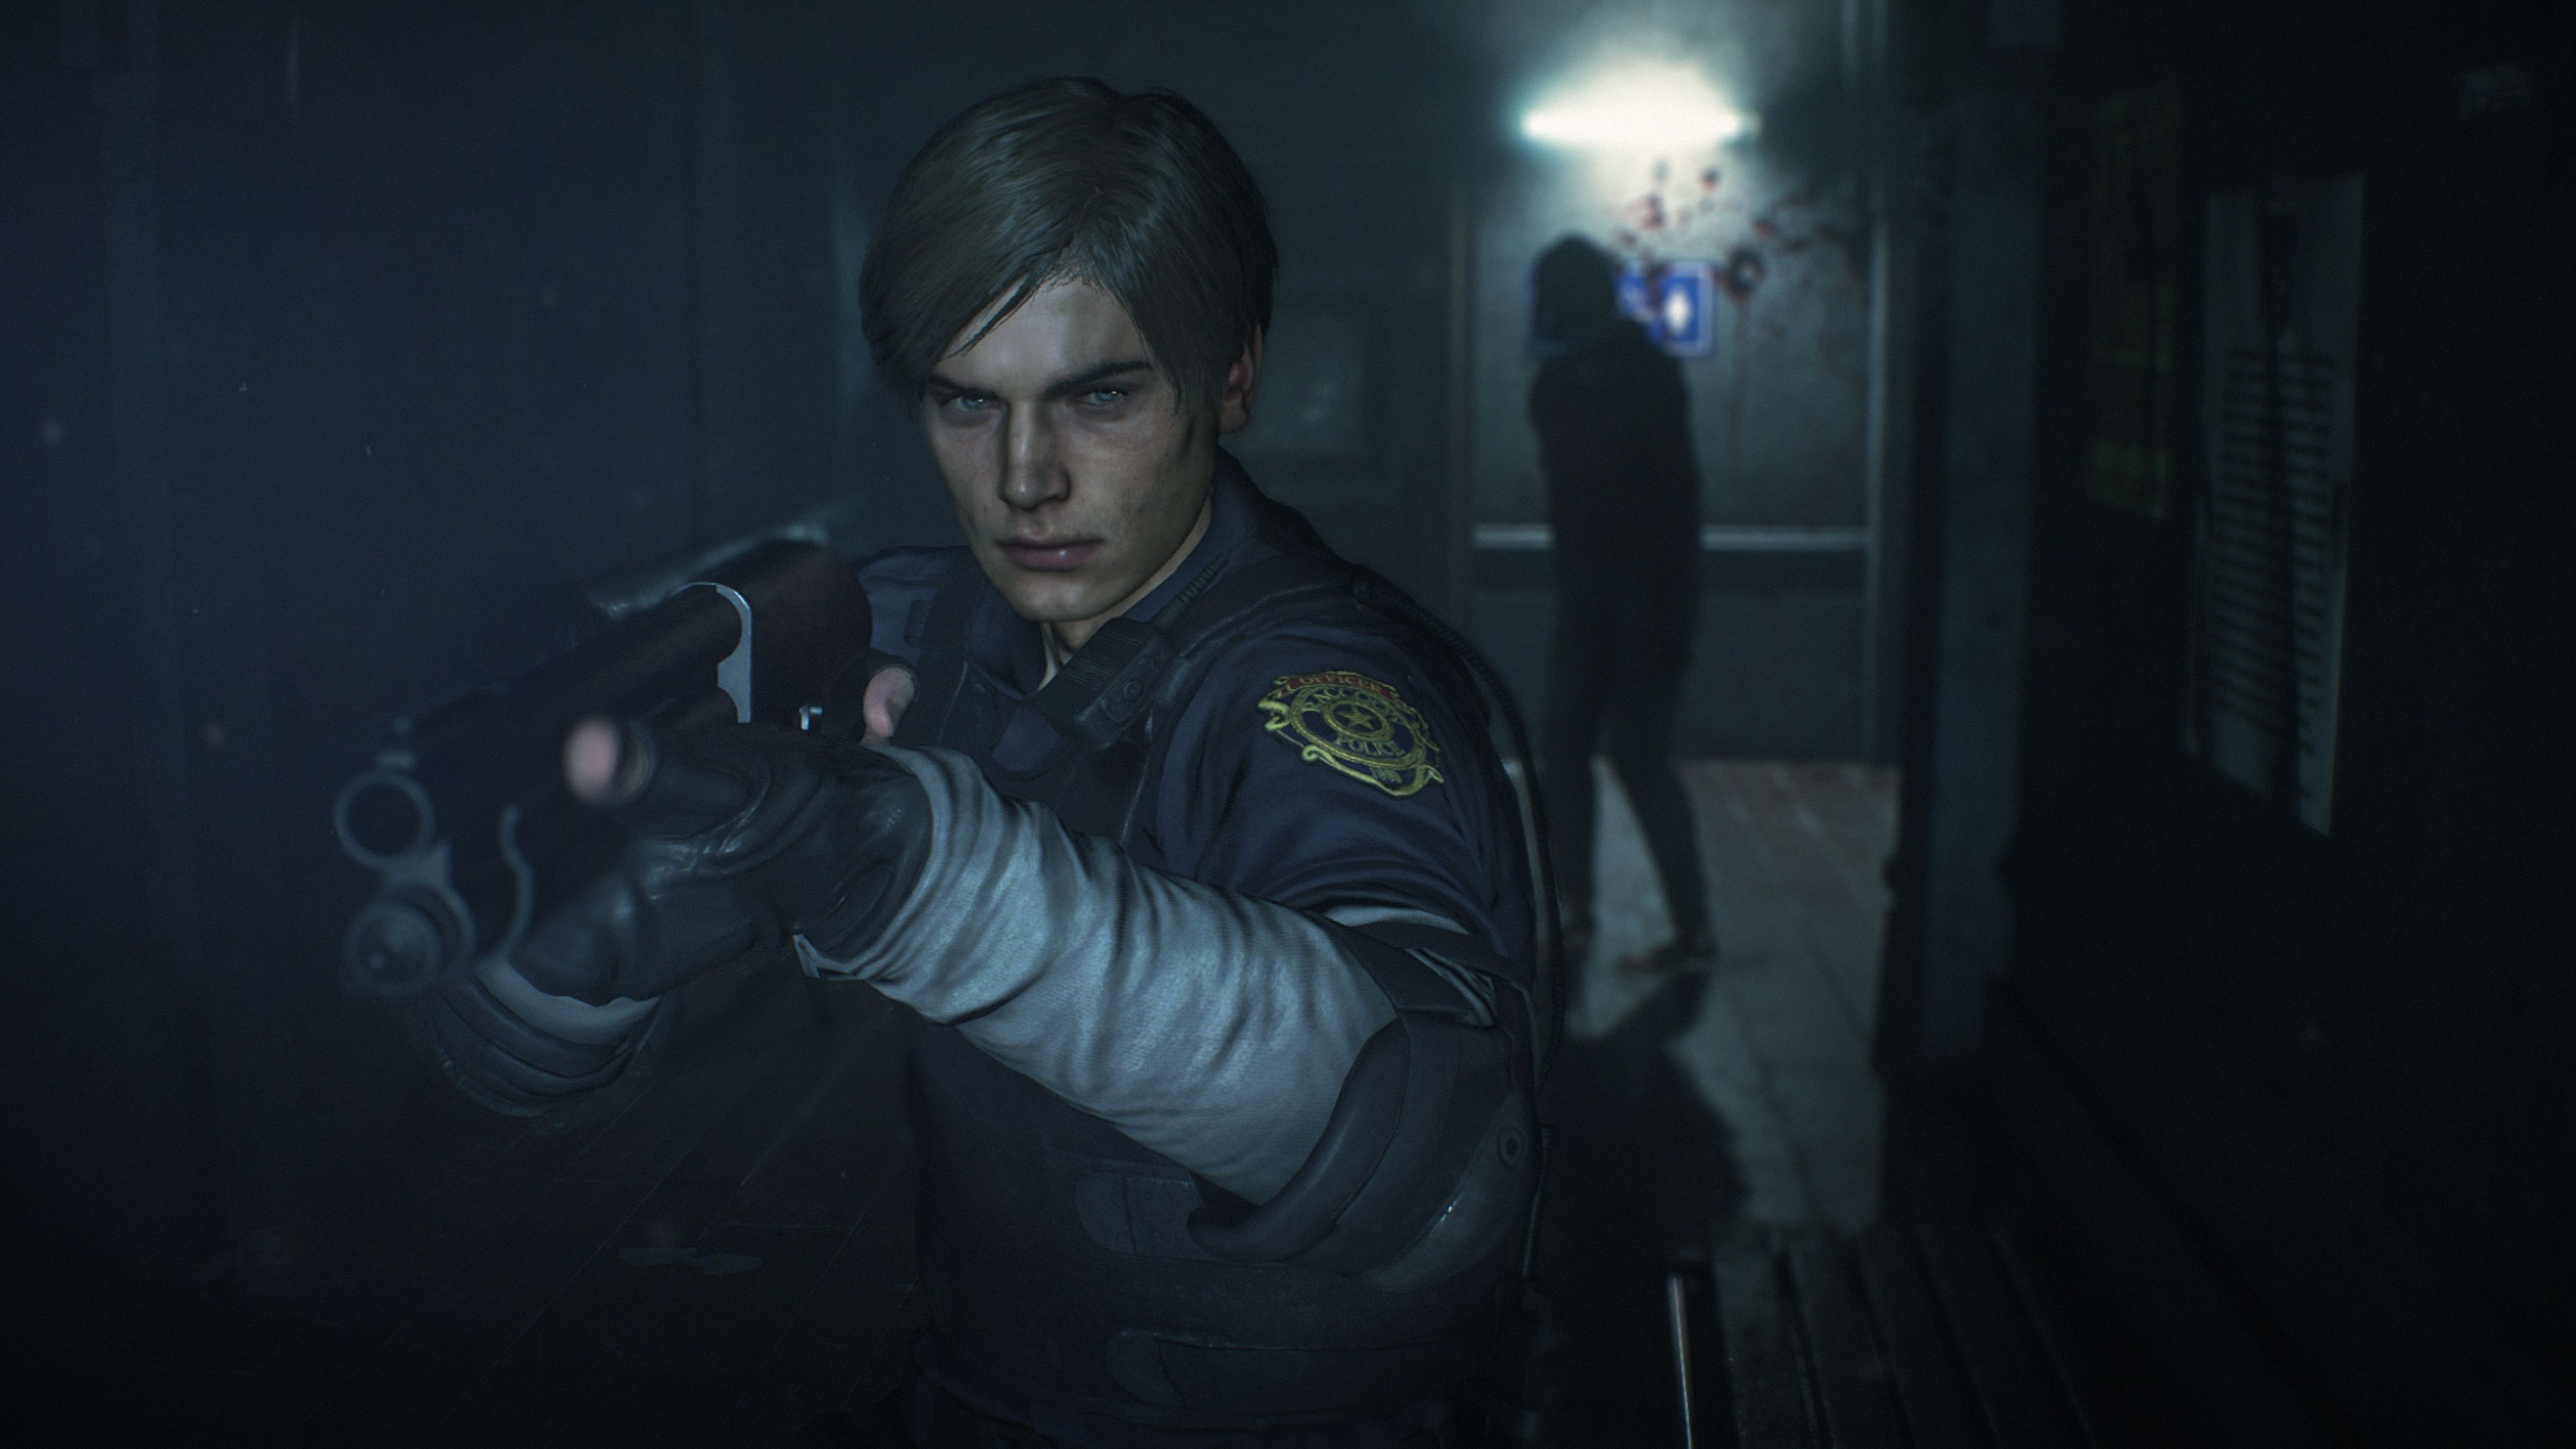 Resident Evil 2 New DLC Allows You to Purchase All In-Game Unlockables